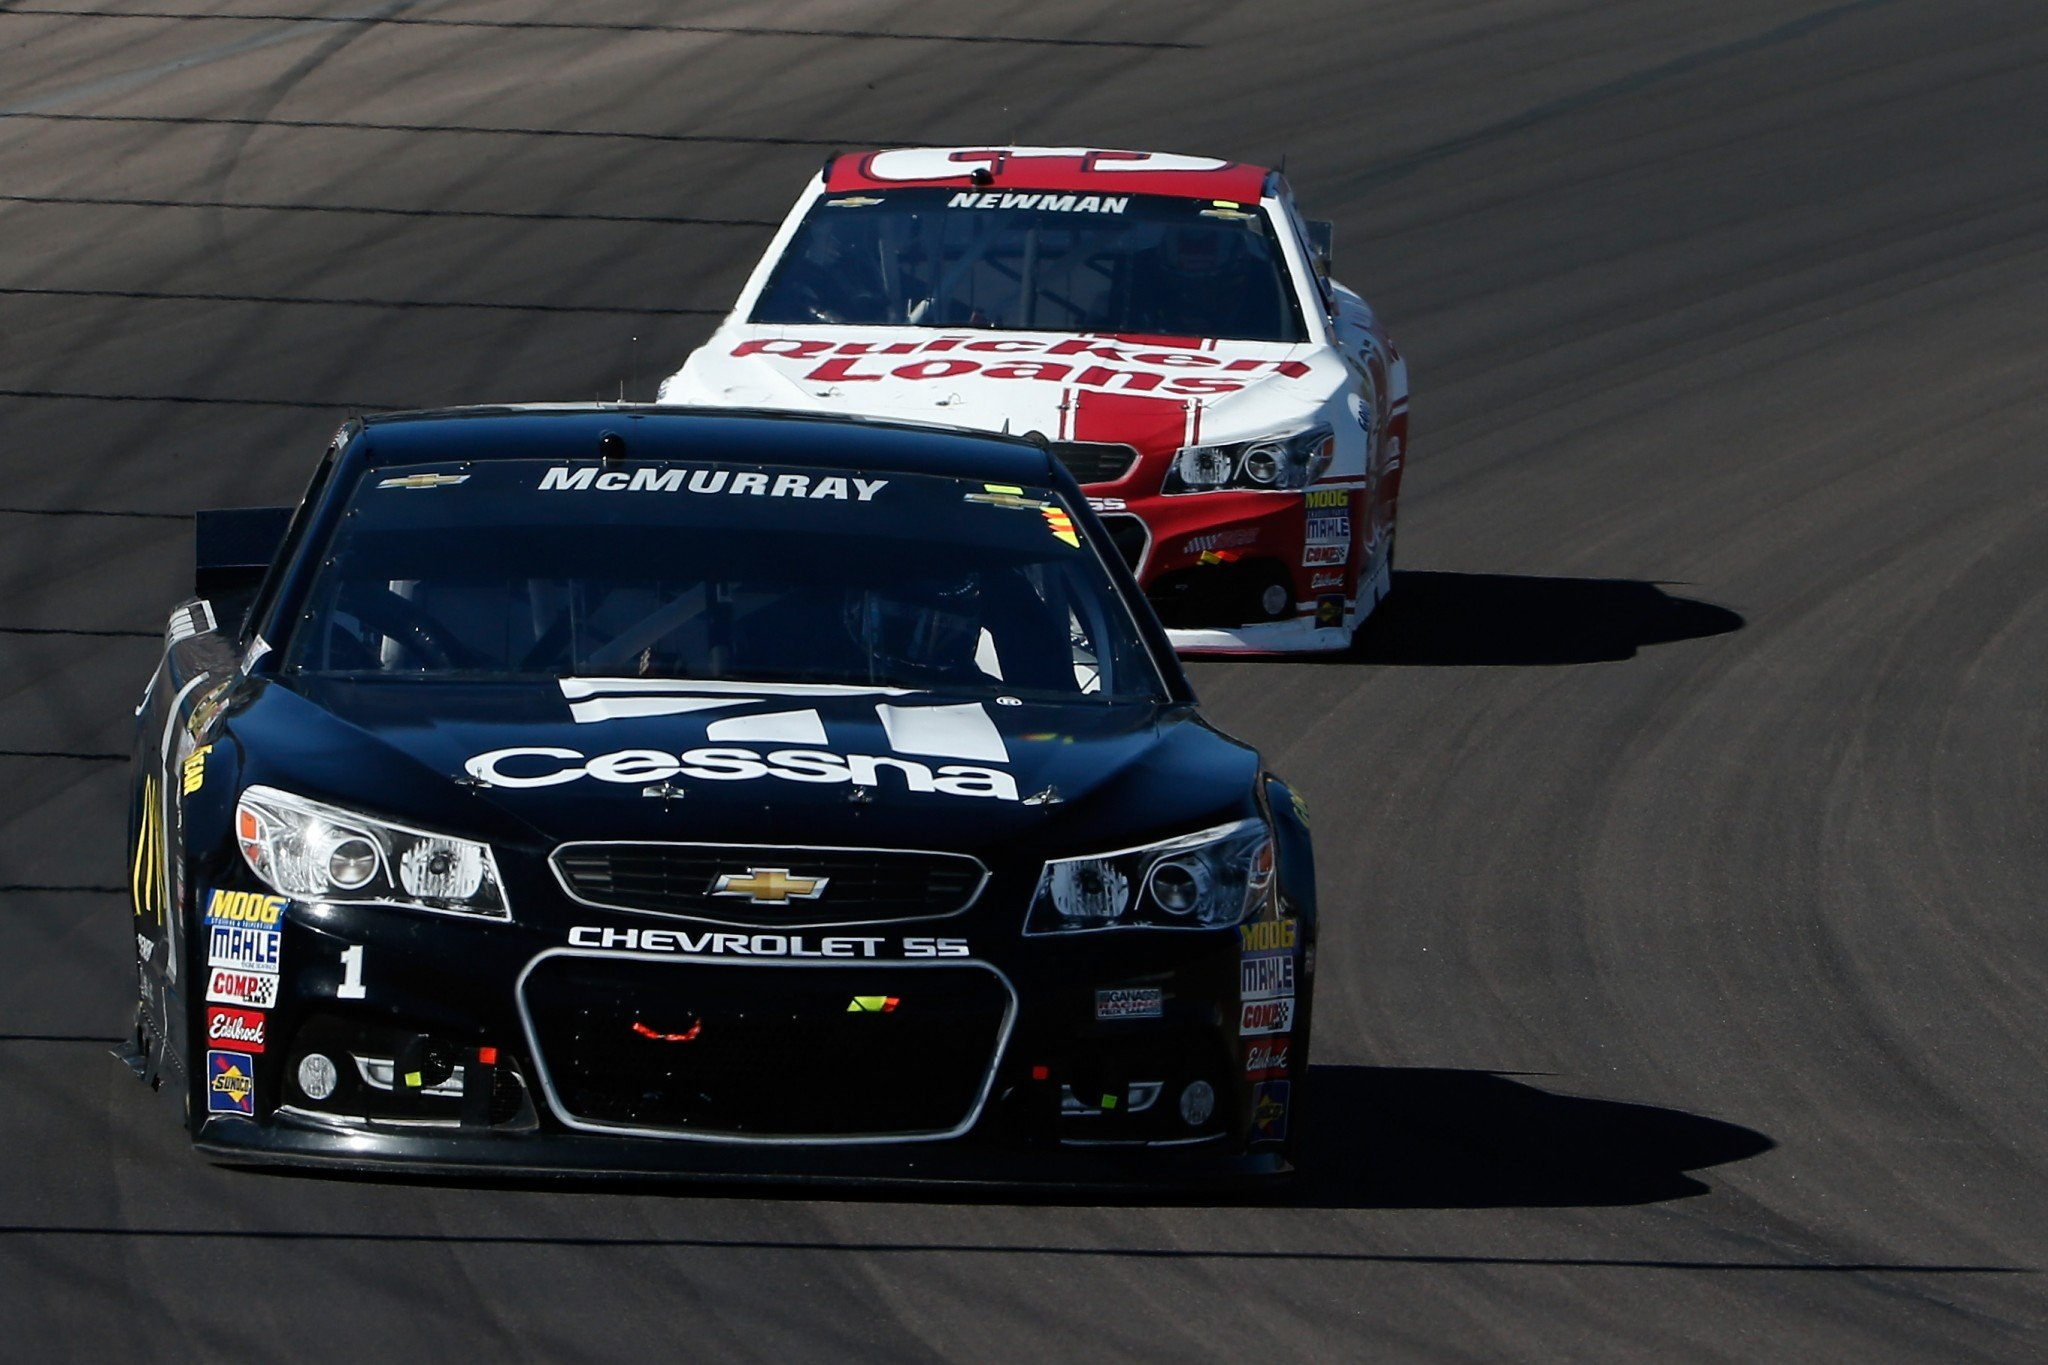 McMurray leads Newman, both here at Phoenix and in the points standings (Getty).